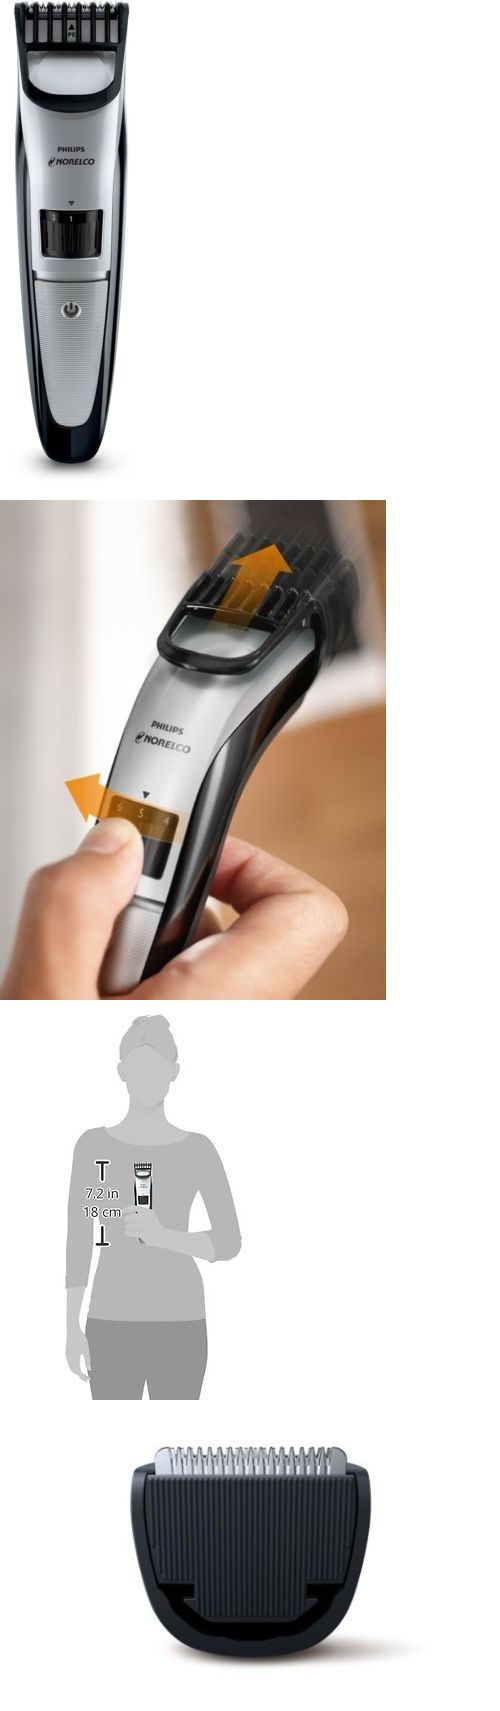 Shaving: Mens Electric New Rechargeable Beard Hair Clipper Trimmer Grooming Shaver Razor BUY IT NOW ONLY: $41.75